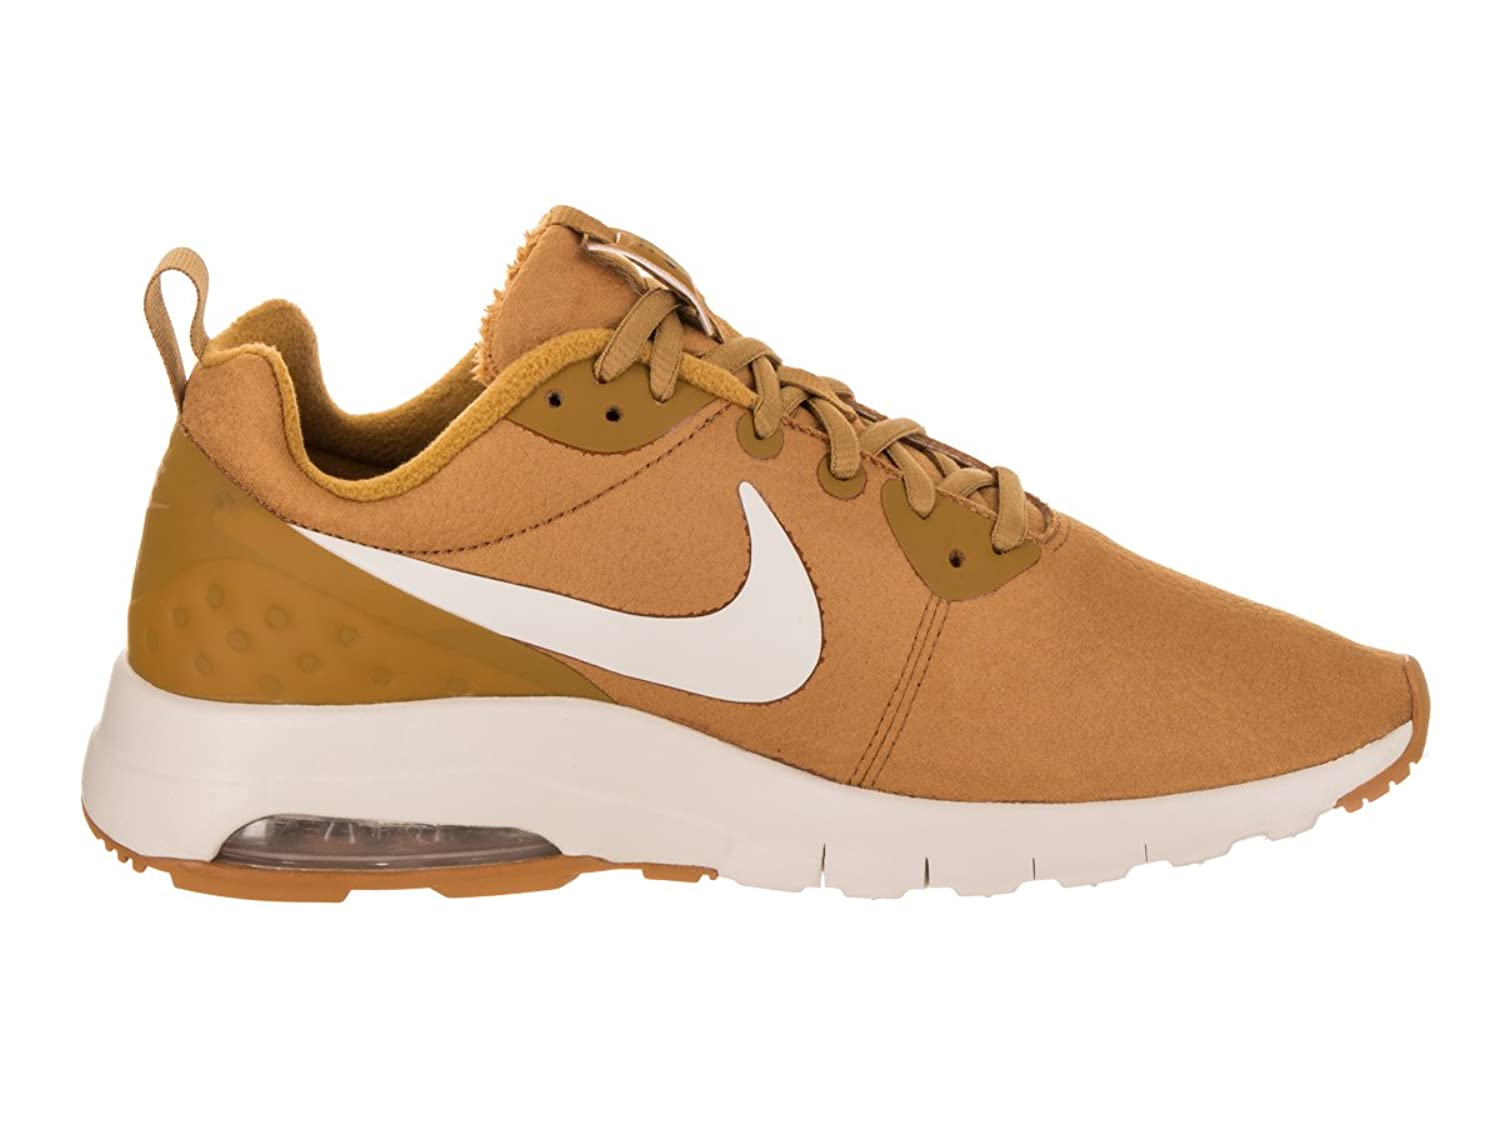 Nike Air Max Motion LW Prem Wheat